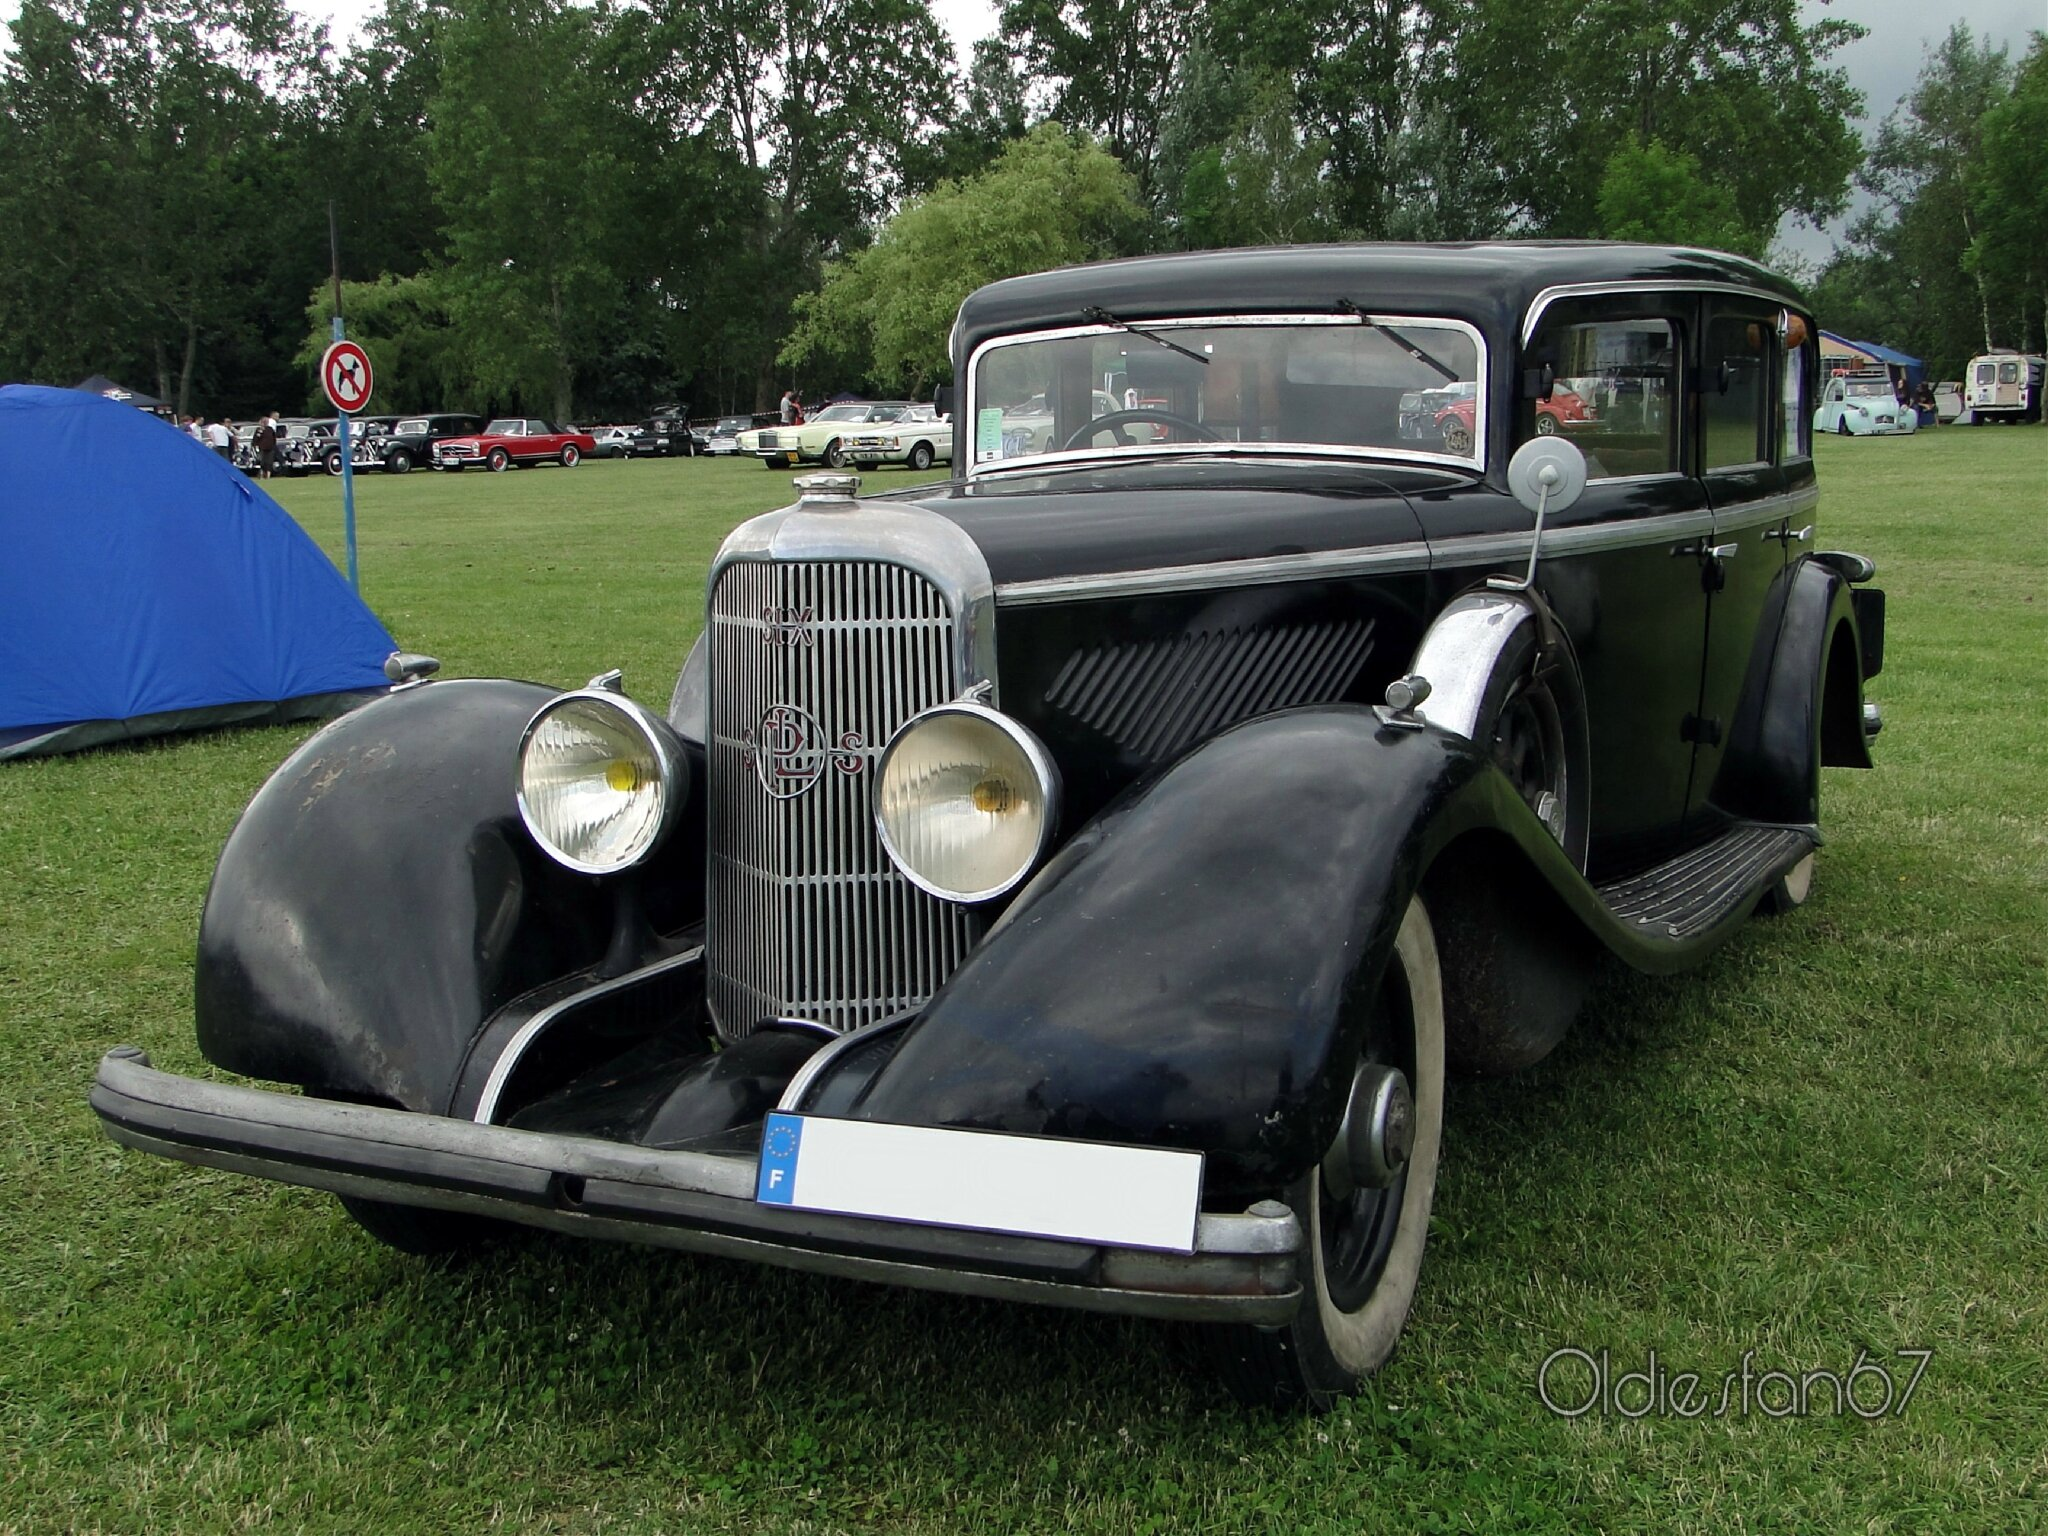 panhard et levassor 6cs x72 berline 1933 oldiesfan67 mon blog auto. Black Bedroom Furniture Sets. Home Design Ideas